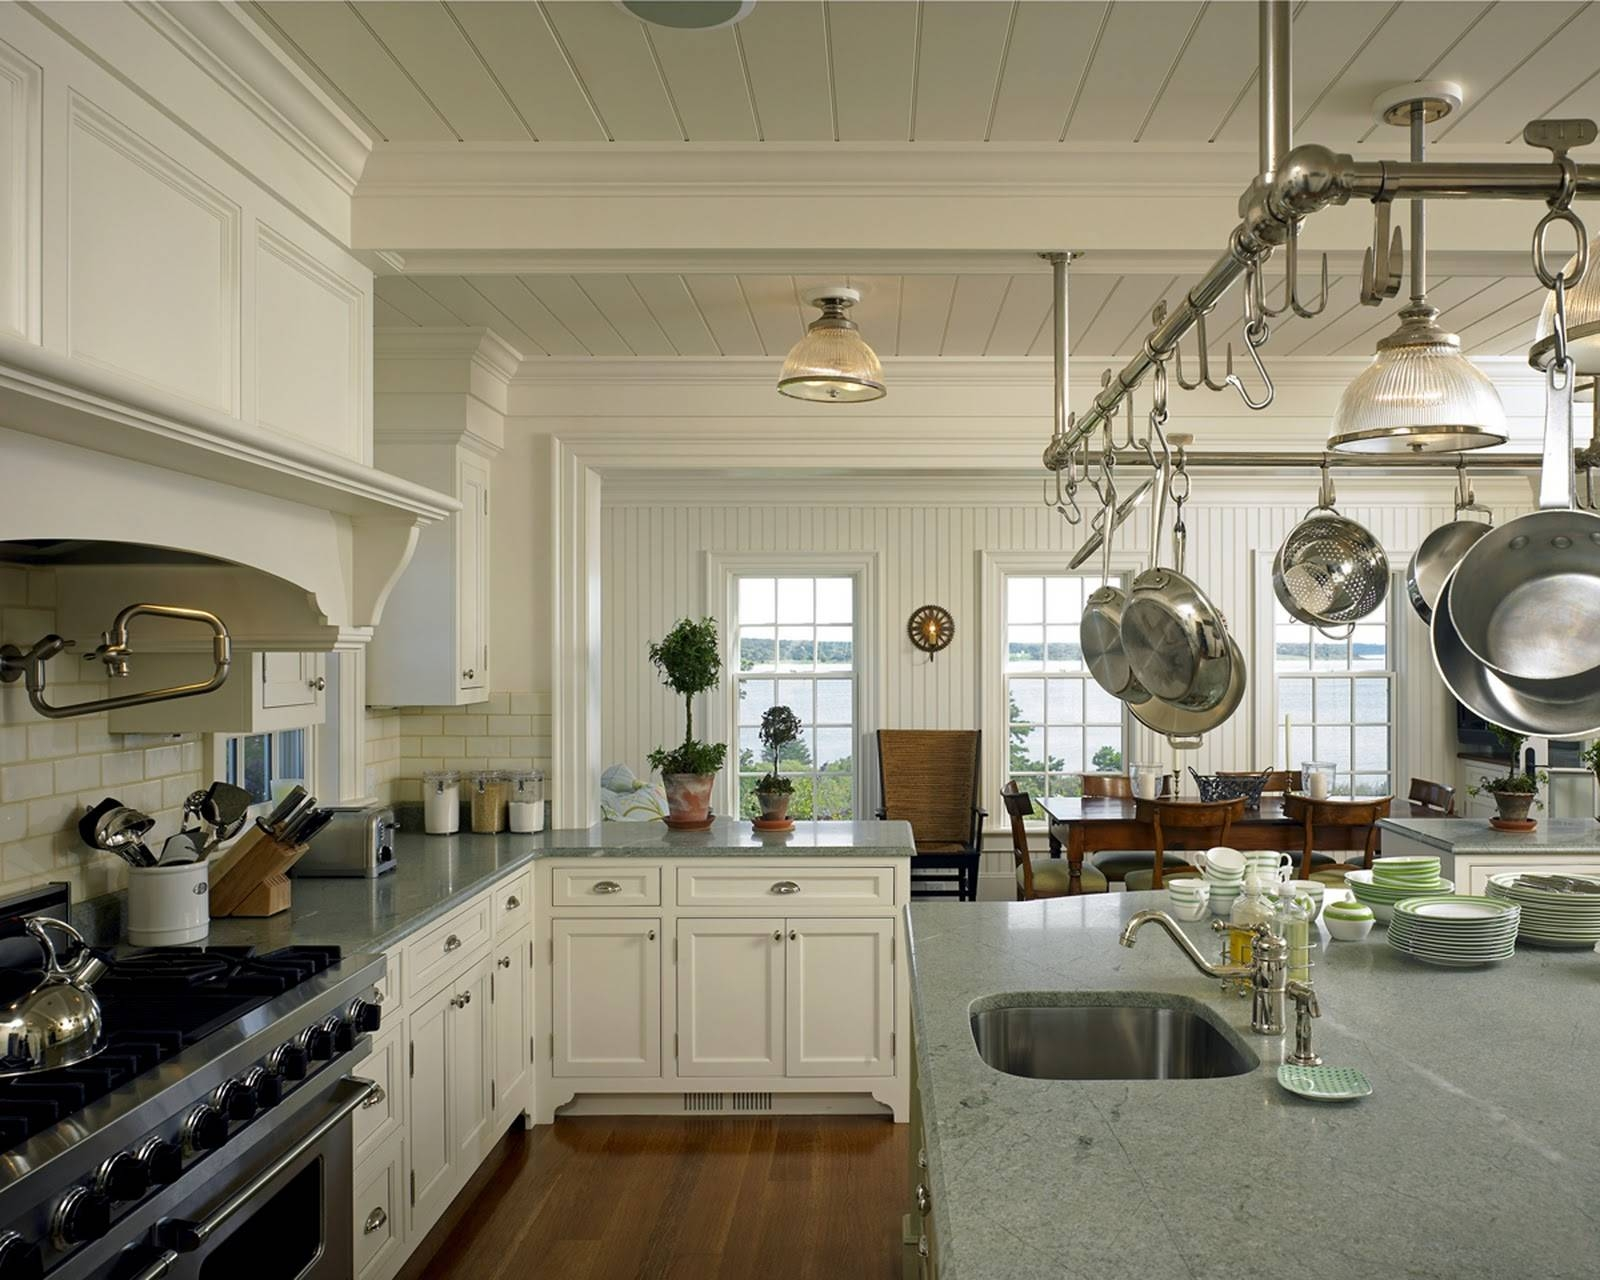 Kitchen Design Ideas: Incredible Decoration Kitchen Pots And Pans within Kitchen Pendant Lights With Pot Rack (Image 11 of 15)